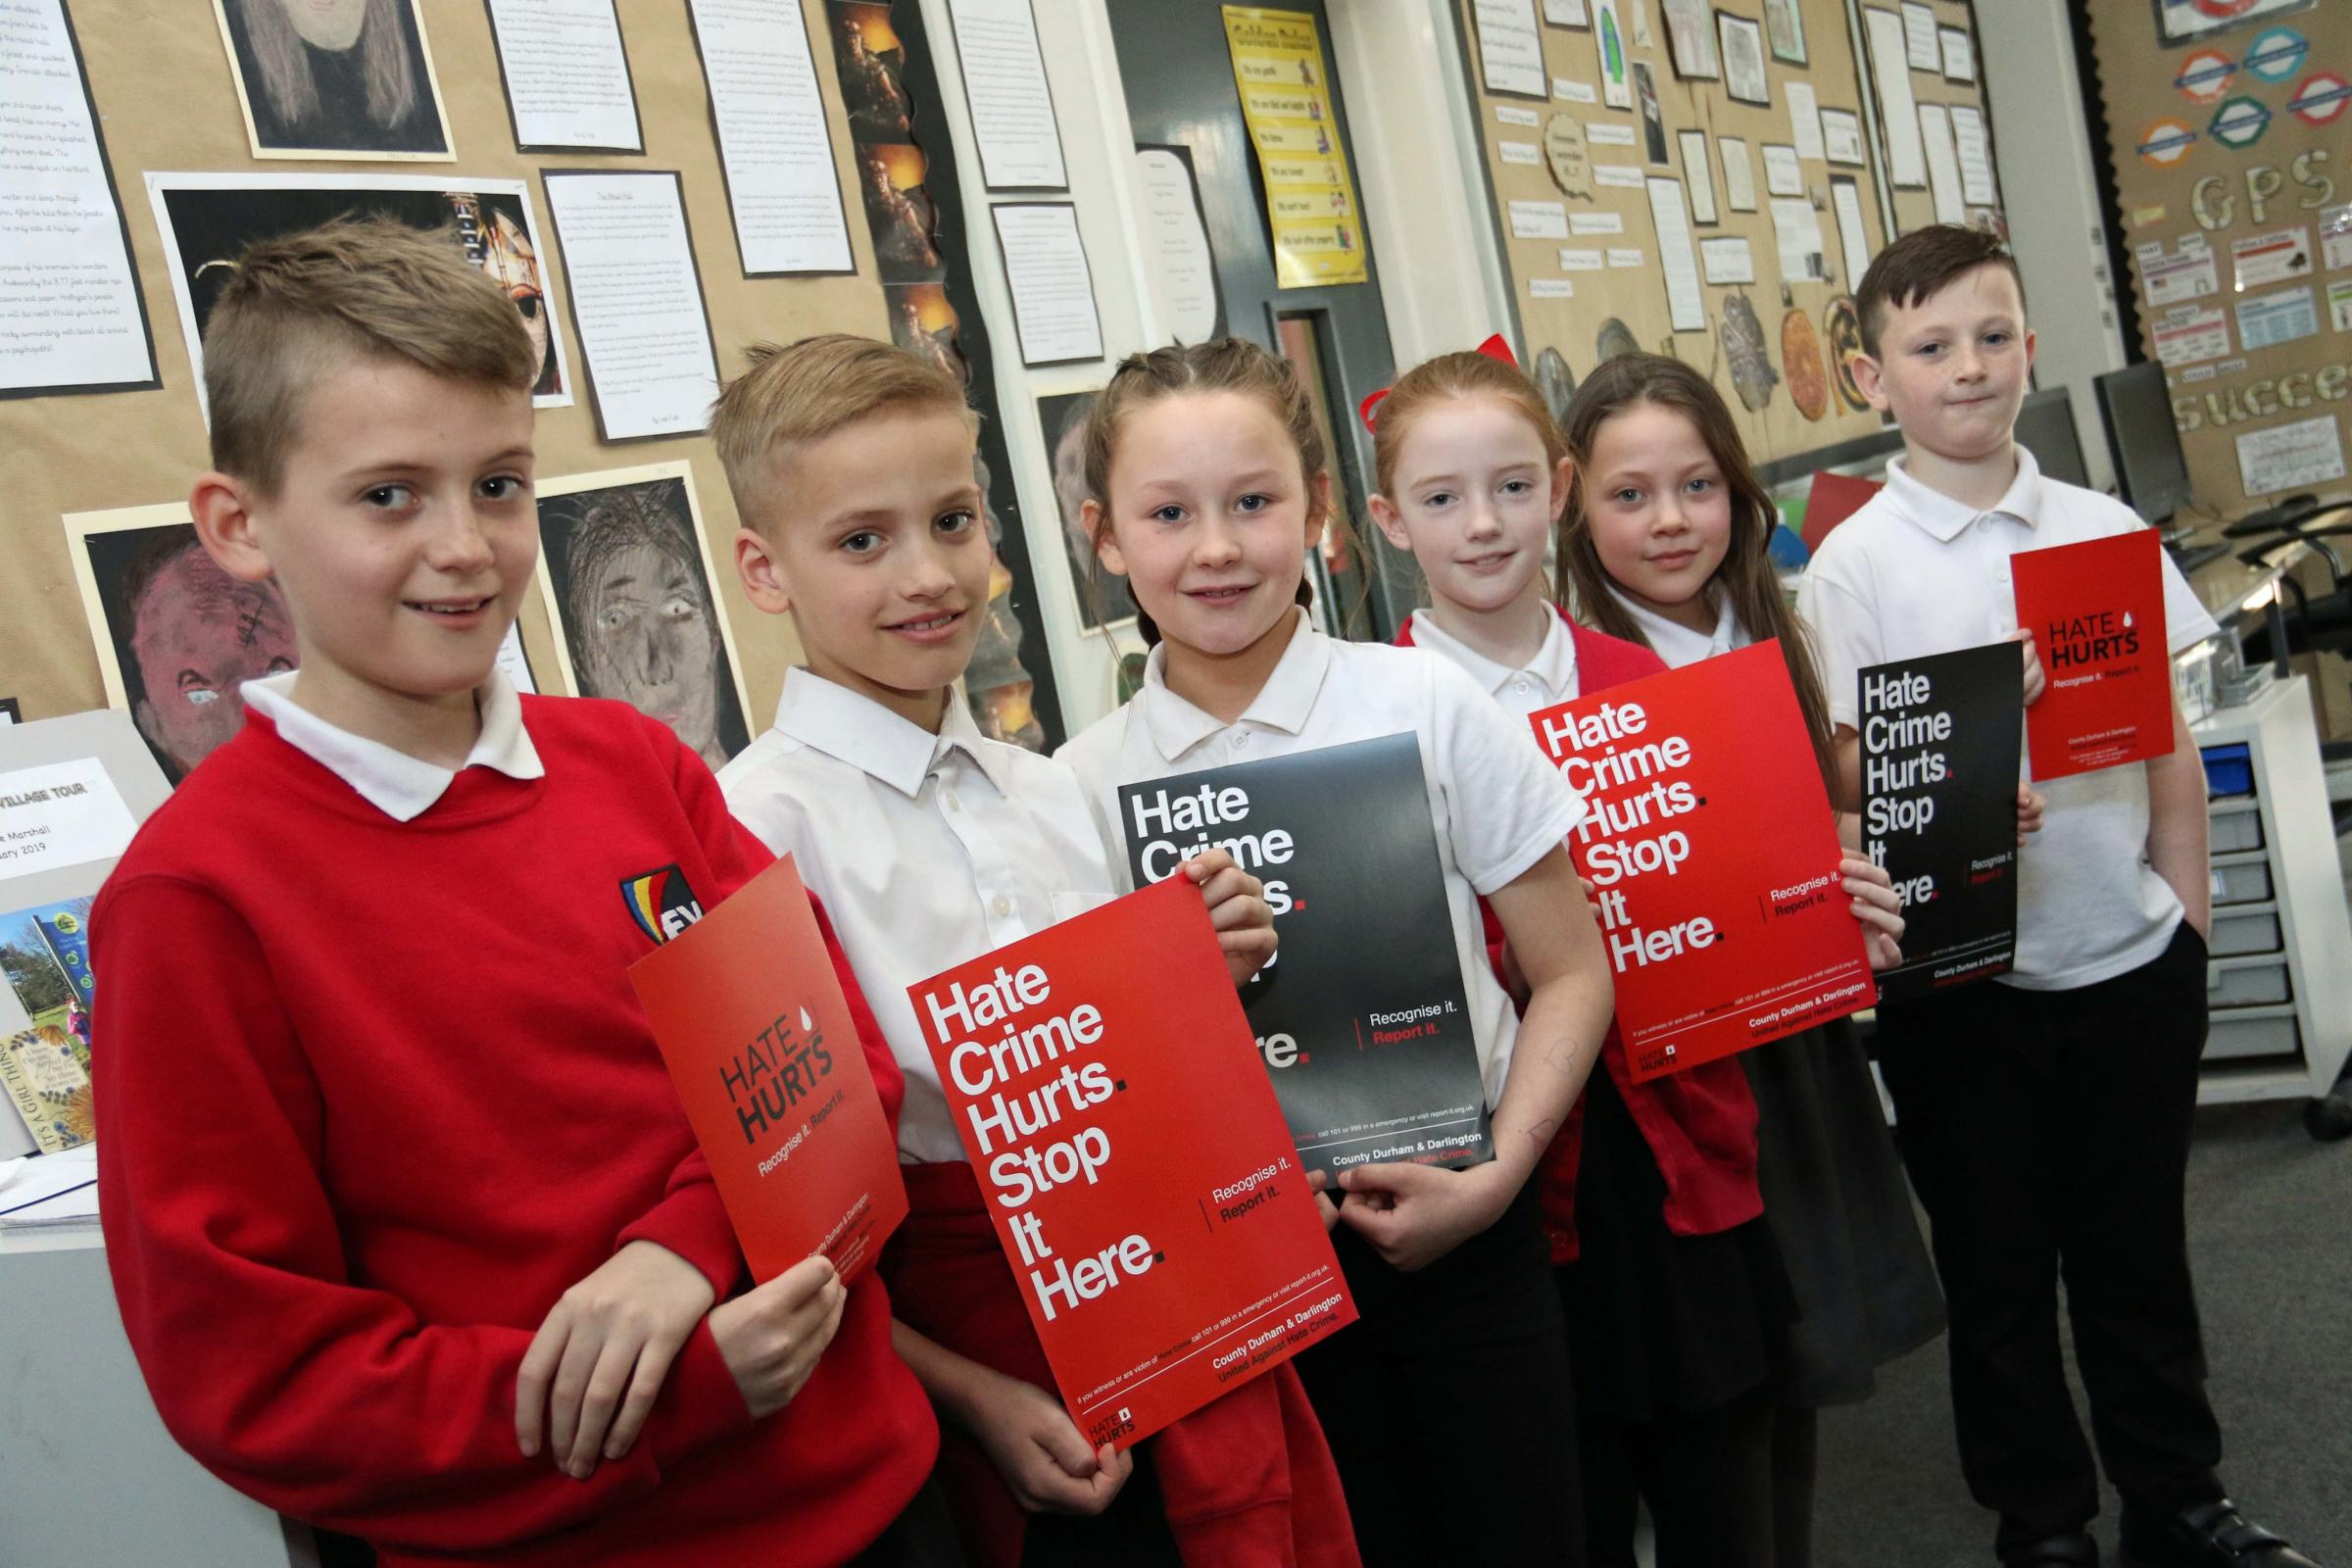 HEALING THE HURT: Pupils from Springfield Academy, part of the Education Village, Darlington, who have joined the growing voice against hate crime committed in the region